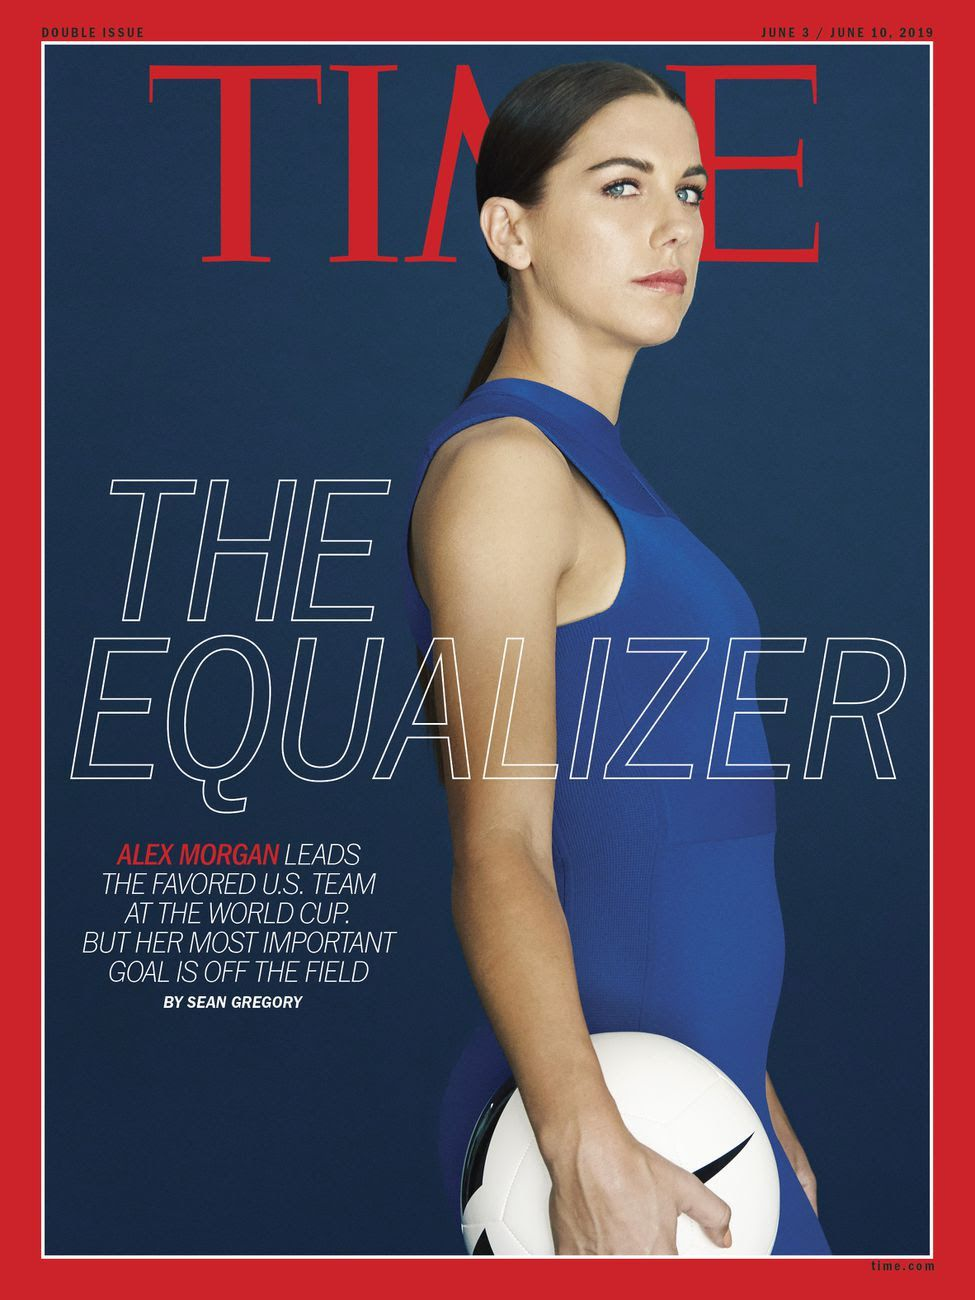 TIME cover featuring Alex Morgan